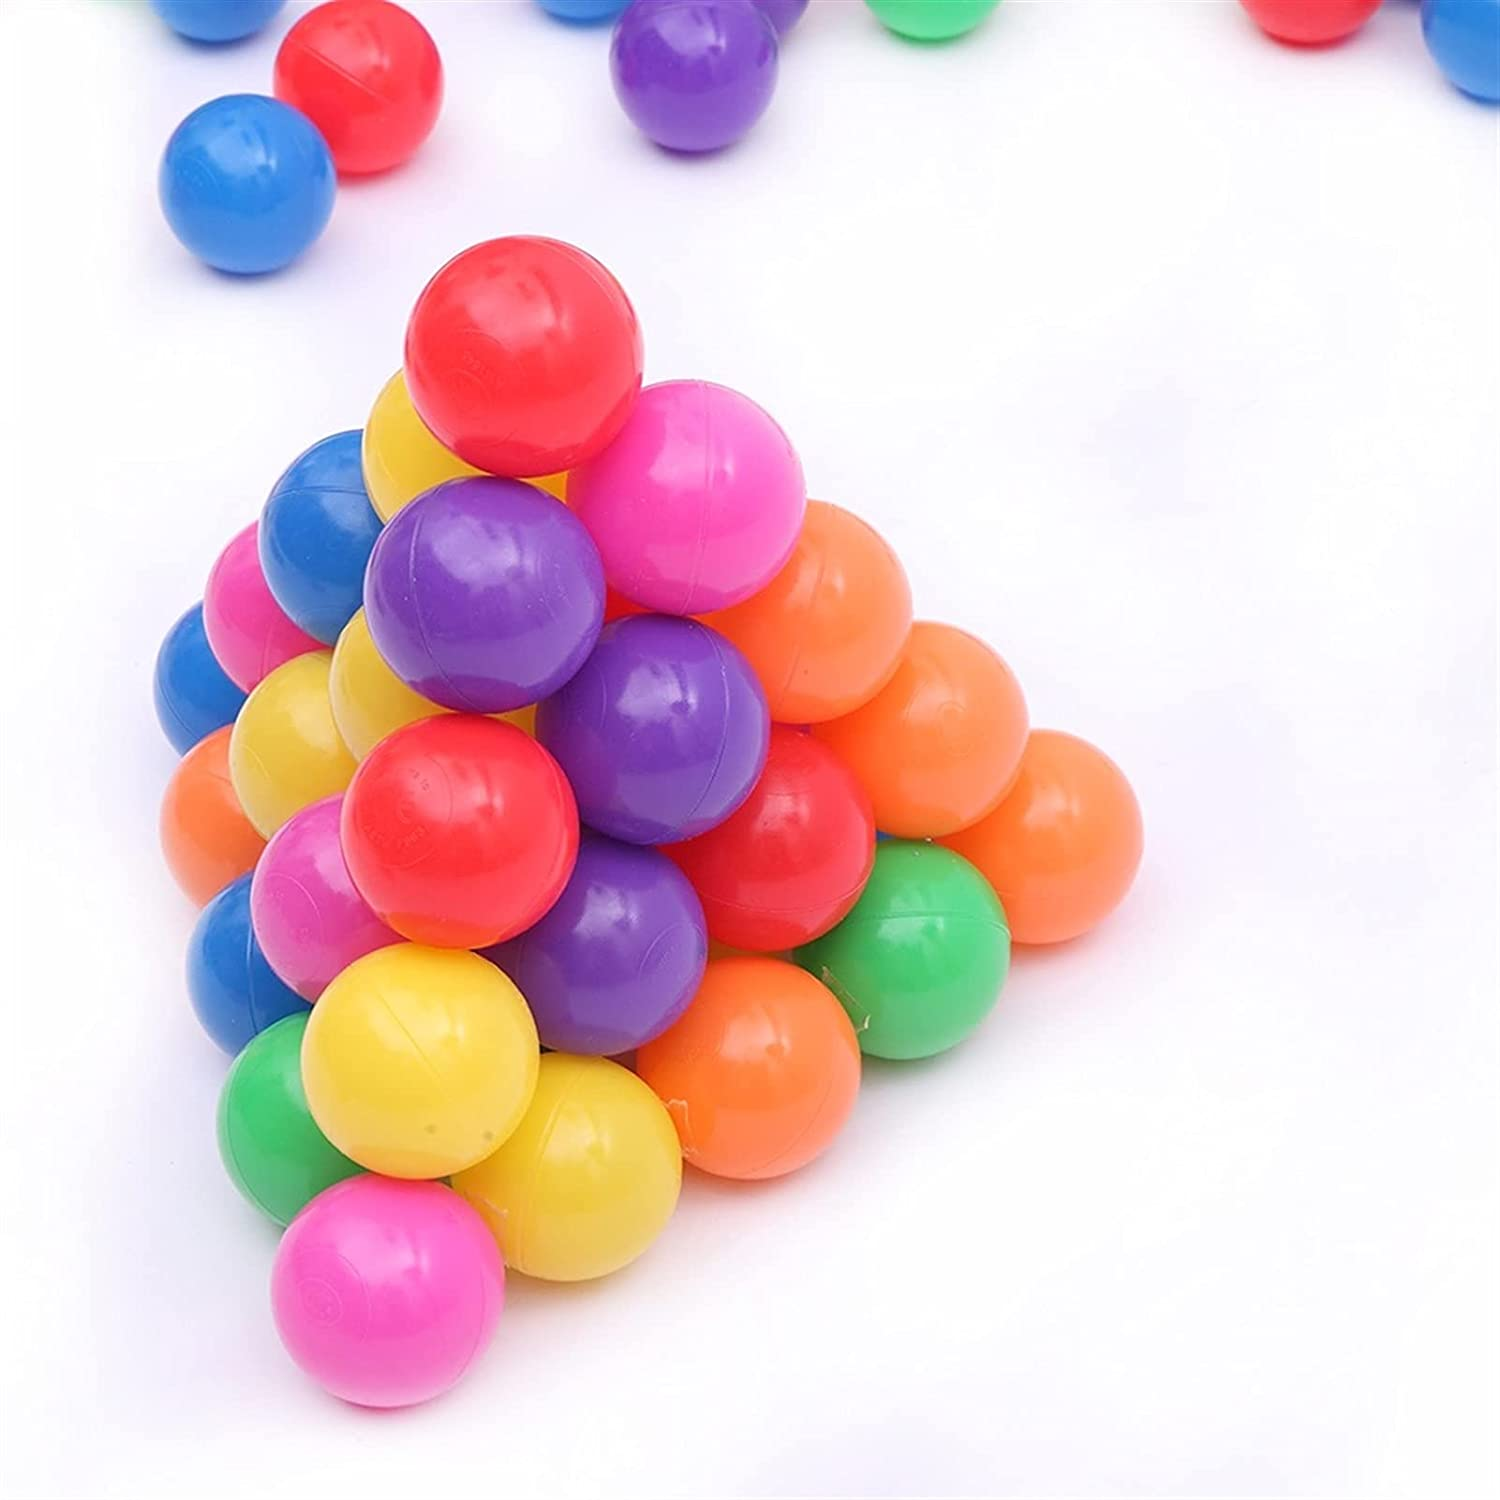 WHNB 100pcs Be super welcome Fun Soft Discount mail order Plastic Ocean Kids Baby Pit Ball Swim Toys